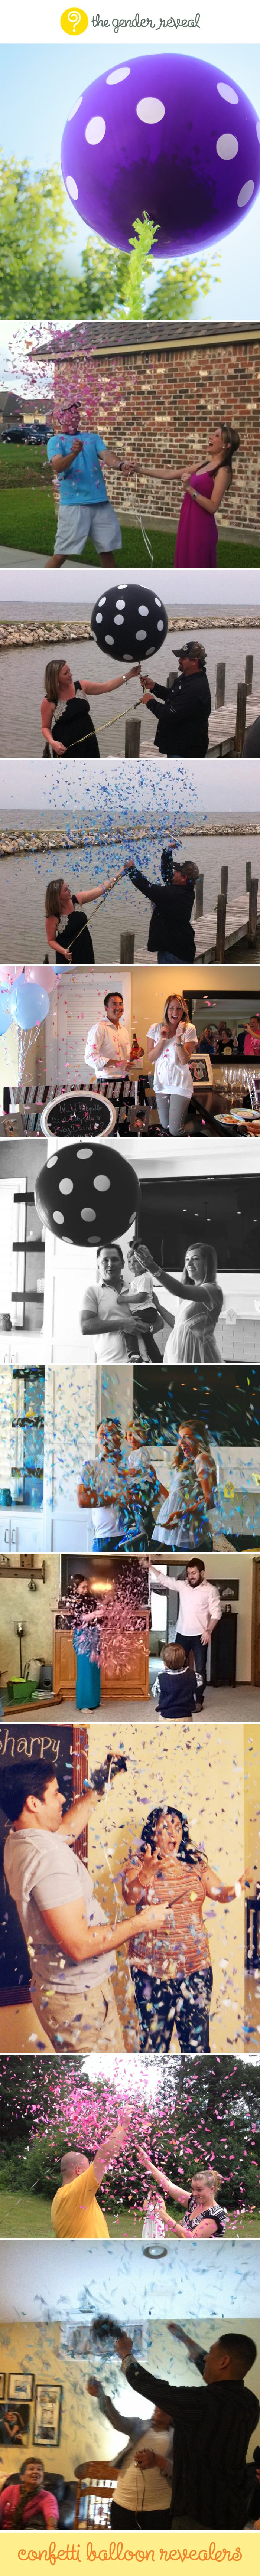 mobile shopping online Confetti Balloon Revealers  genderreveal     I would use this if I ever did a gender reveal